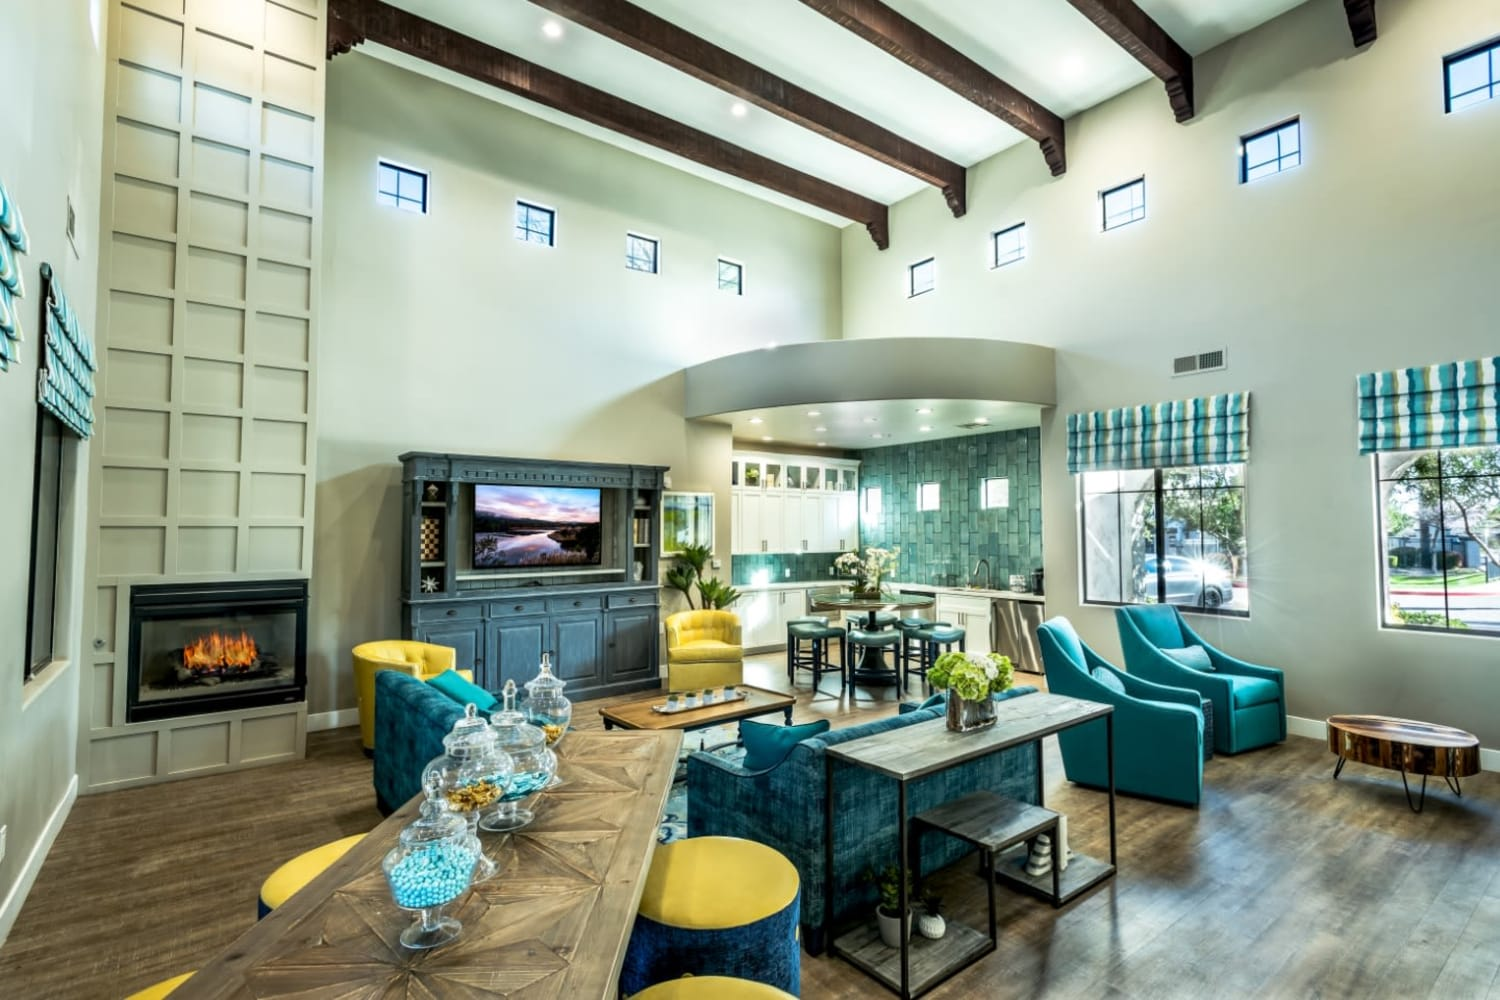 Dobson 2222 in Chandler, Arizona, offers a large clubhouse